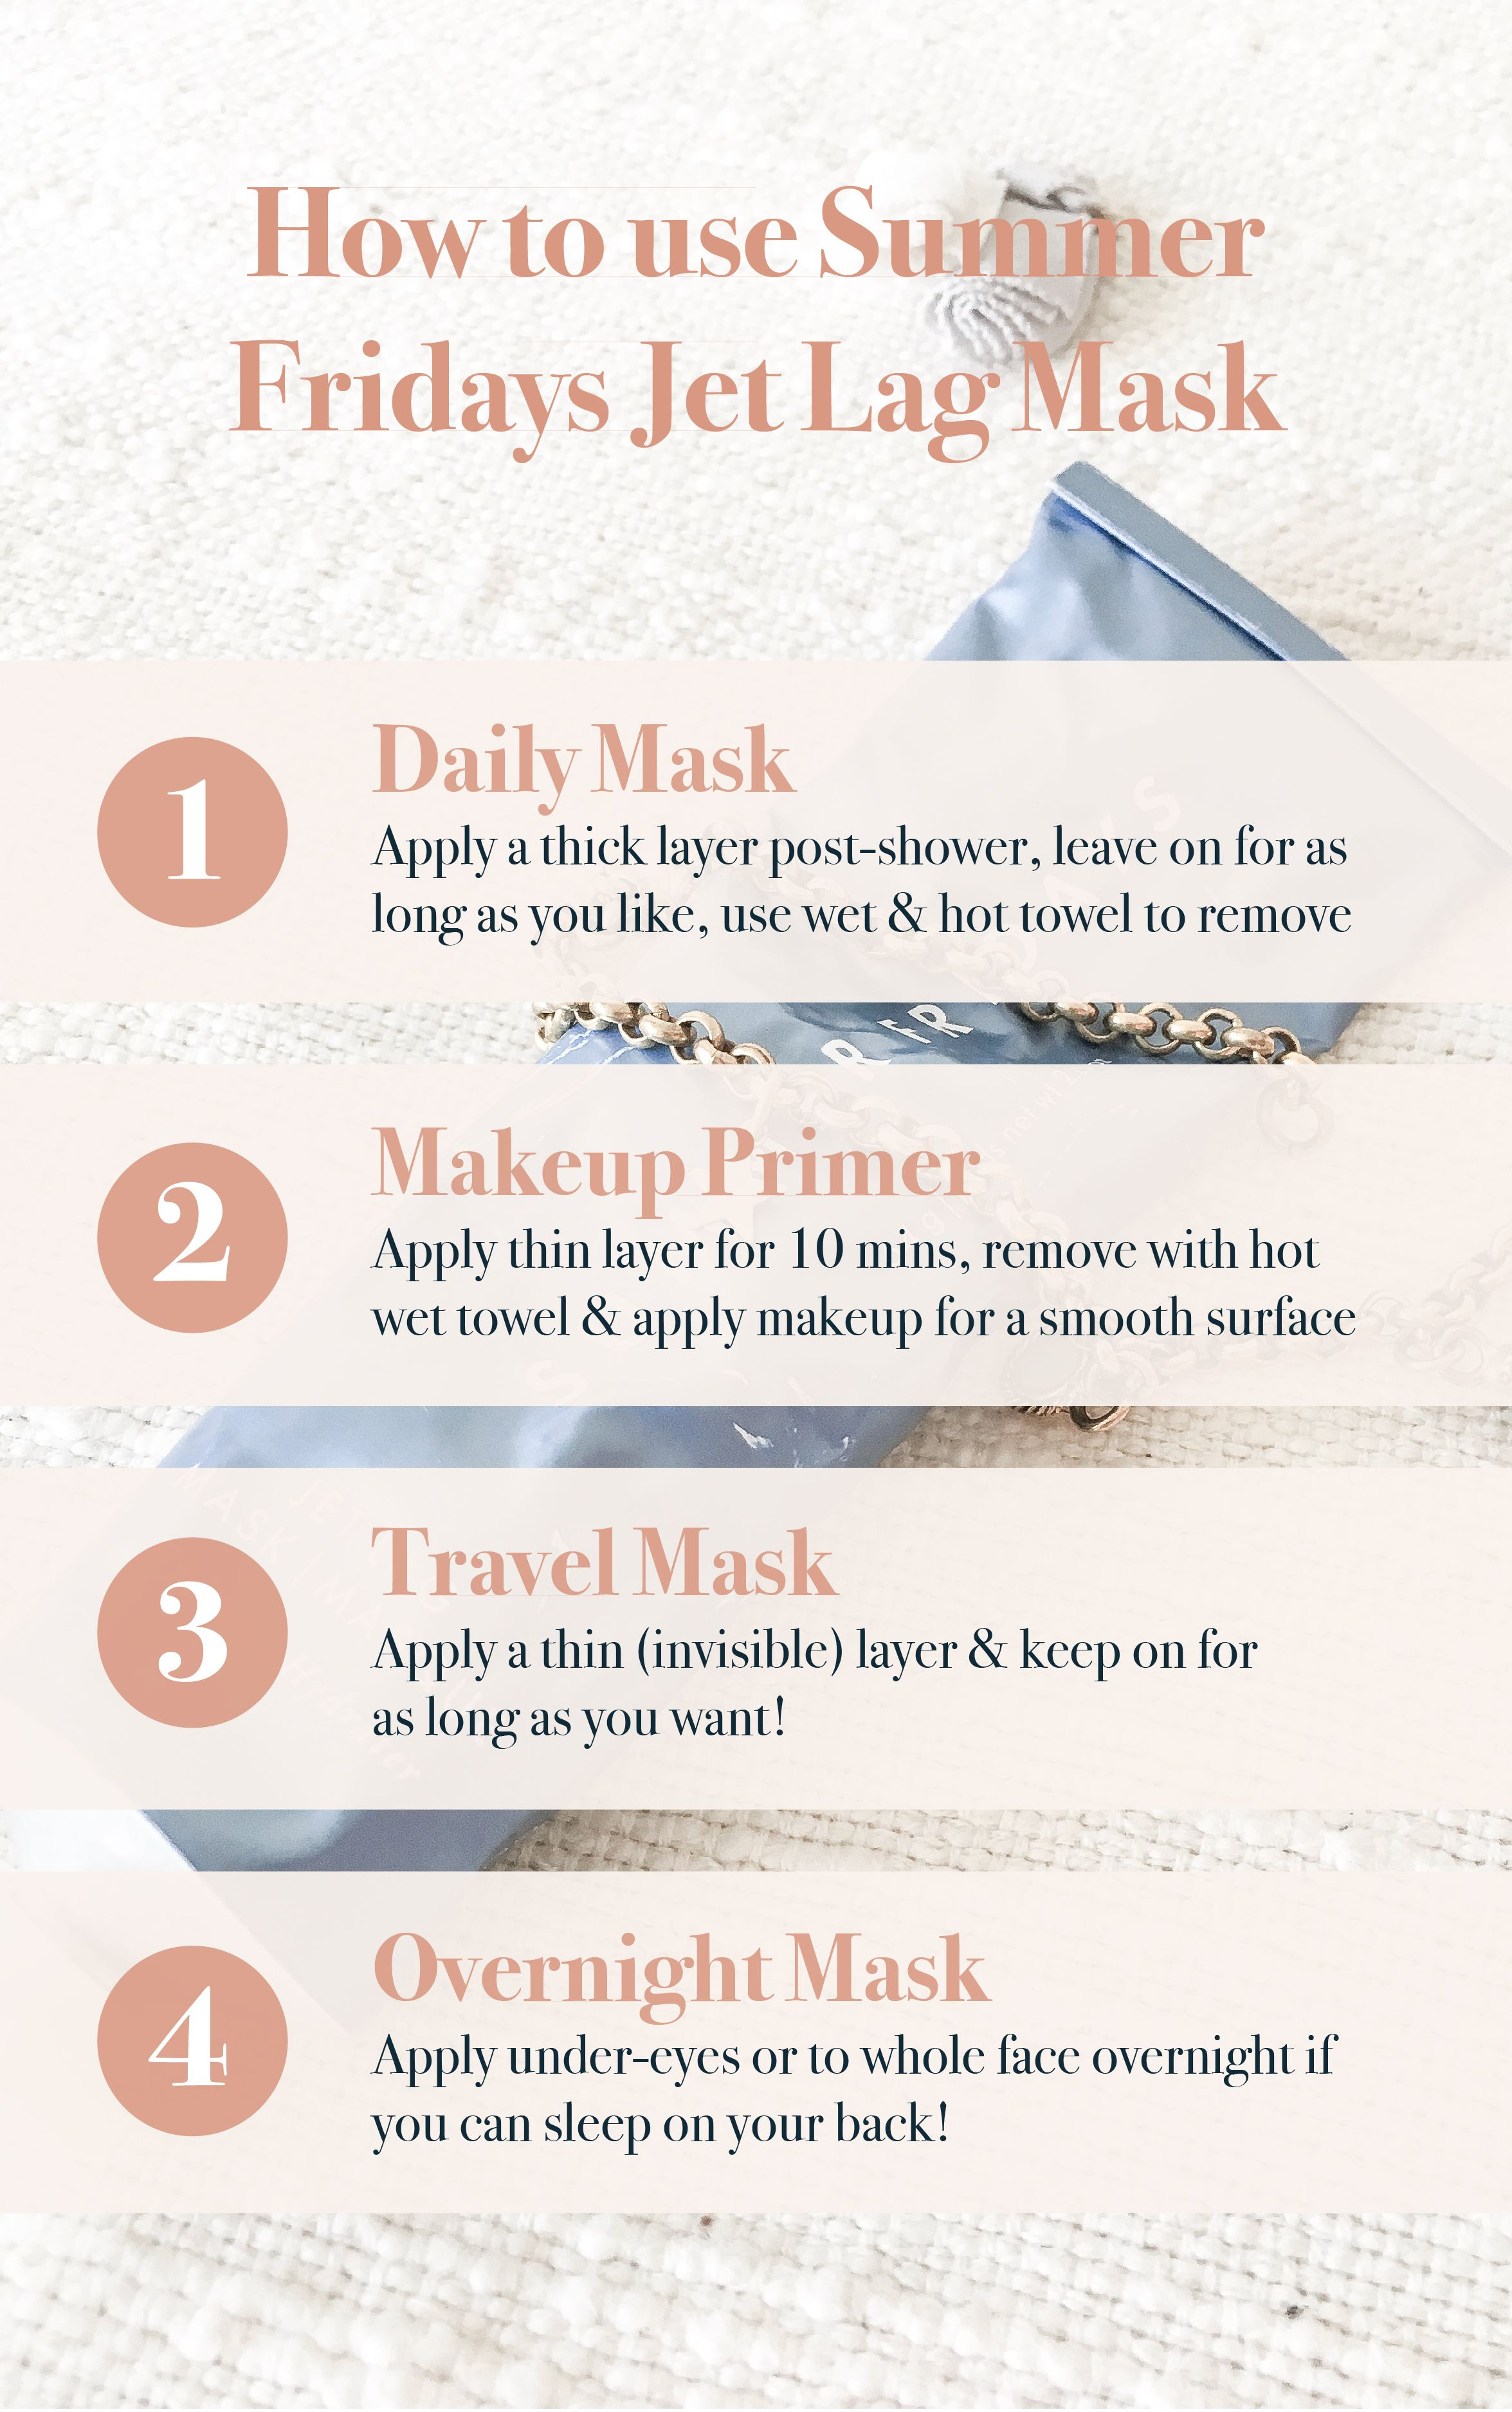 Jet Lag Mask The New Step In Your Skincare Routine Sarah Gross Design Travel Beauty Routine Travel Beauty Essentials Travel Beauty